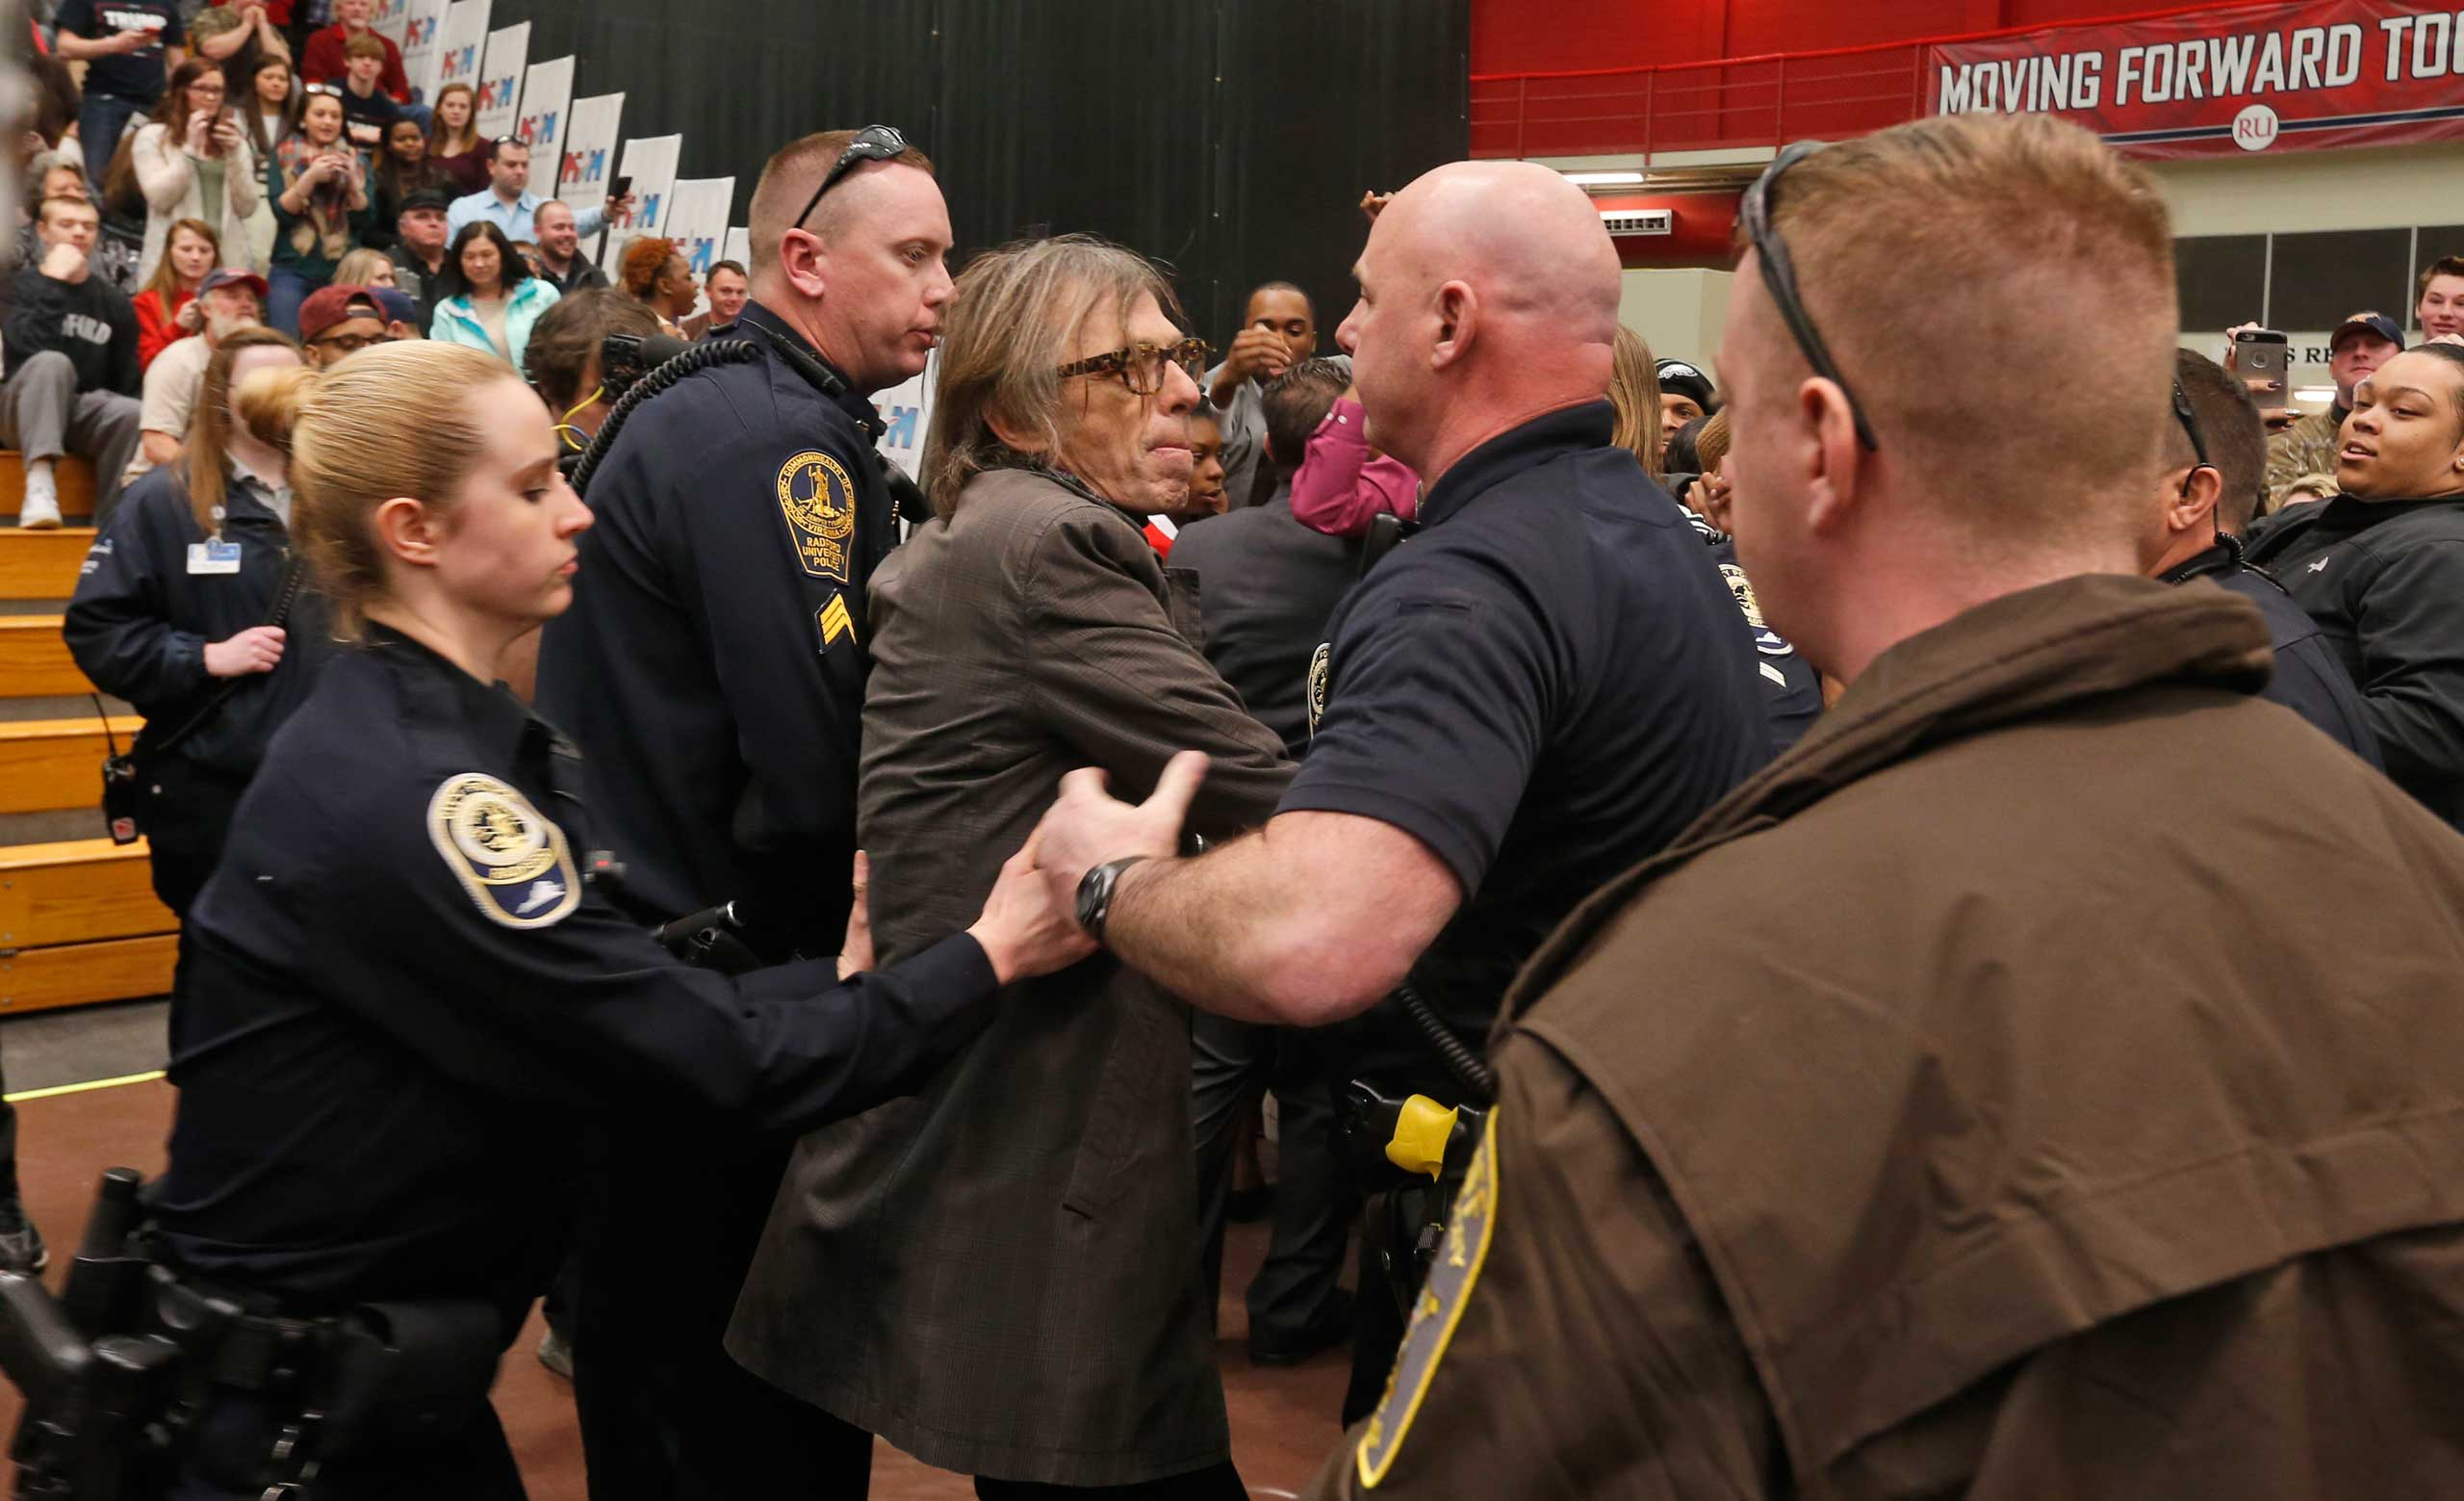 TIME photographer Christopher Morris is detained by police during a rally of Republican presidential candidate, Donald Trump, at Radford University in Radford, Va., Feb. 29, 2016.